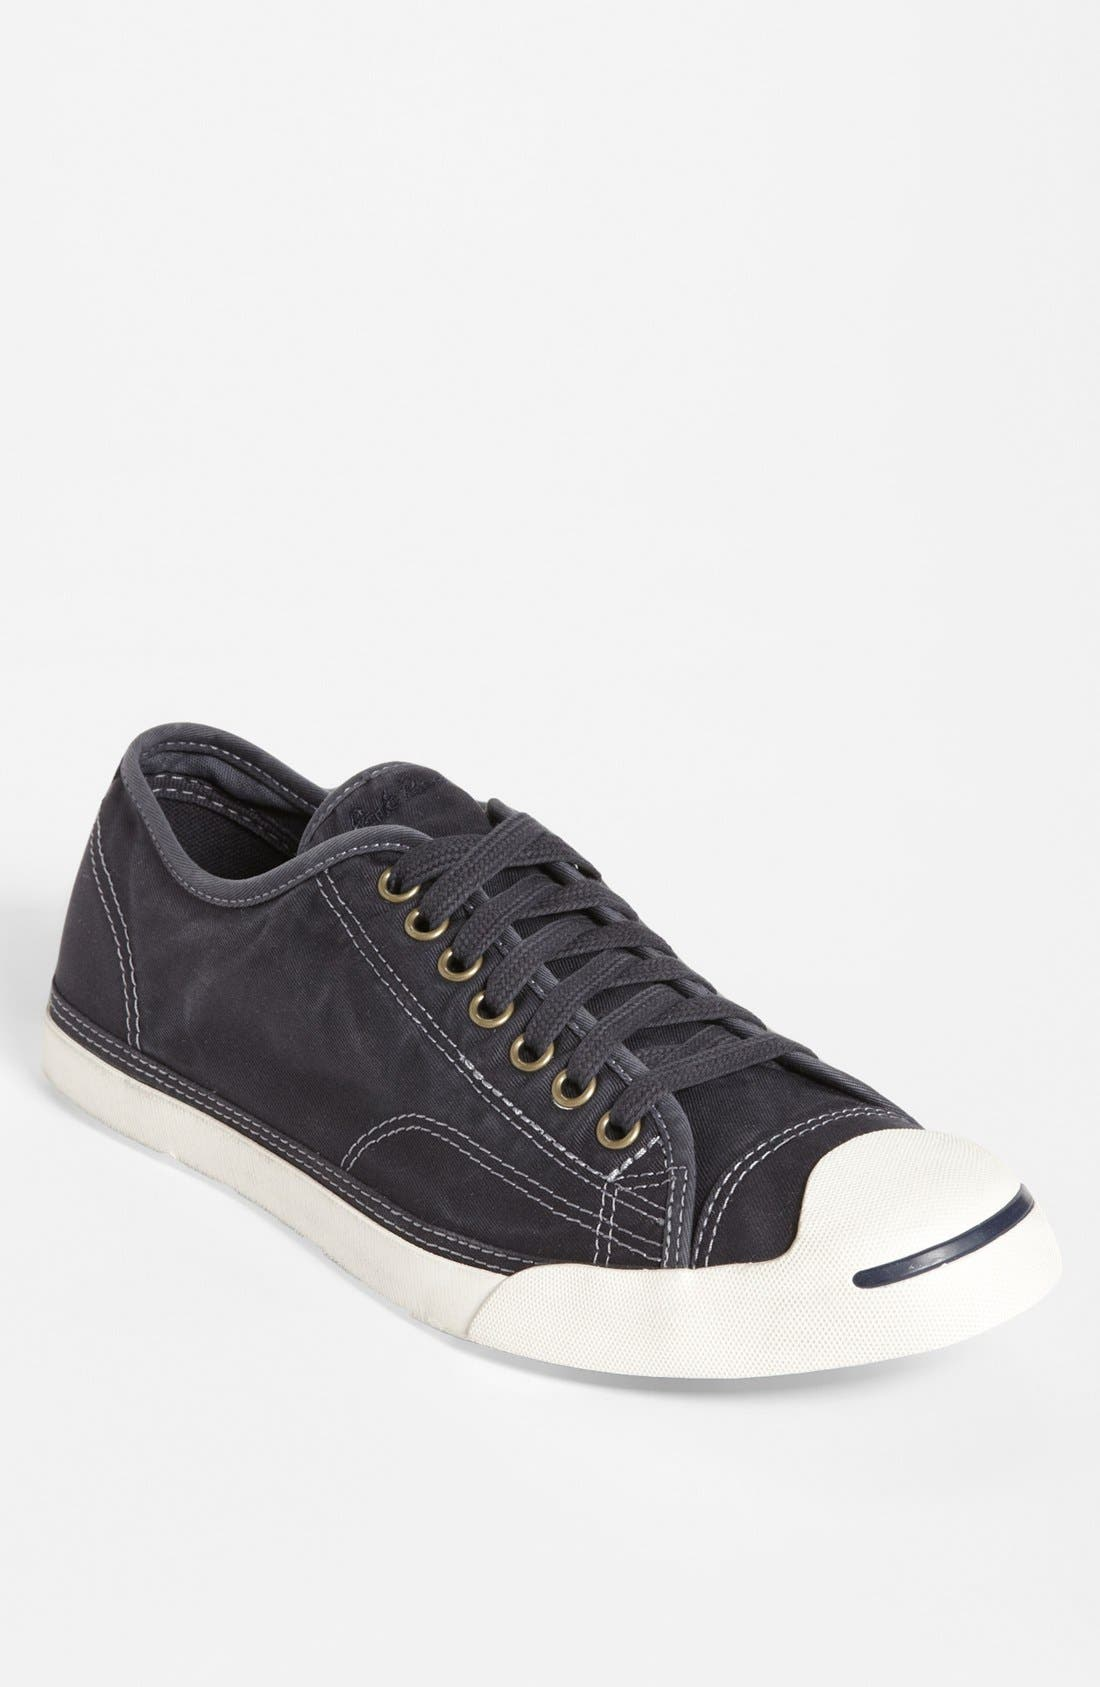 Alternate Image 1 Selected - Converse 'Jack Purcell LP' Slip-On Sneaker (Men)